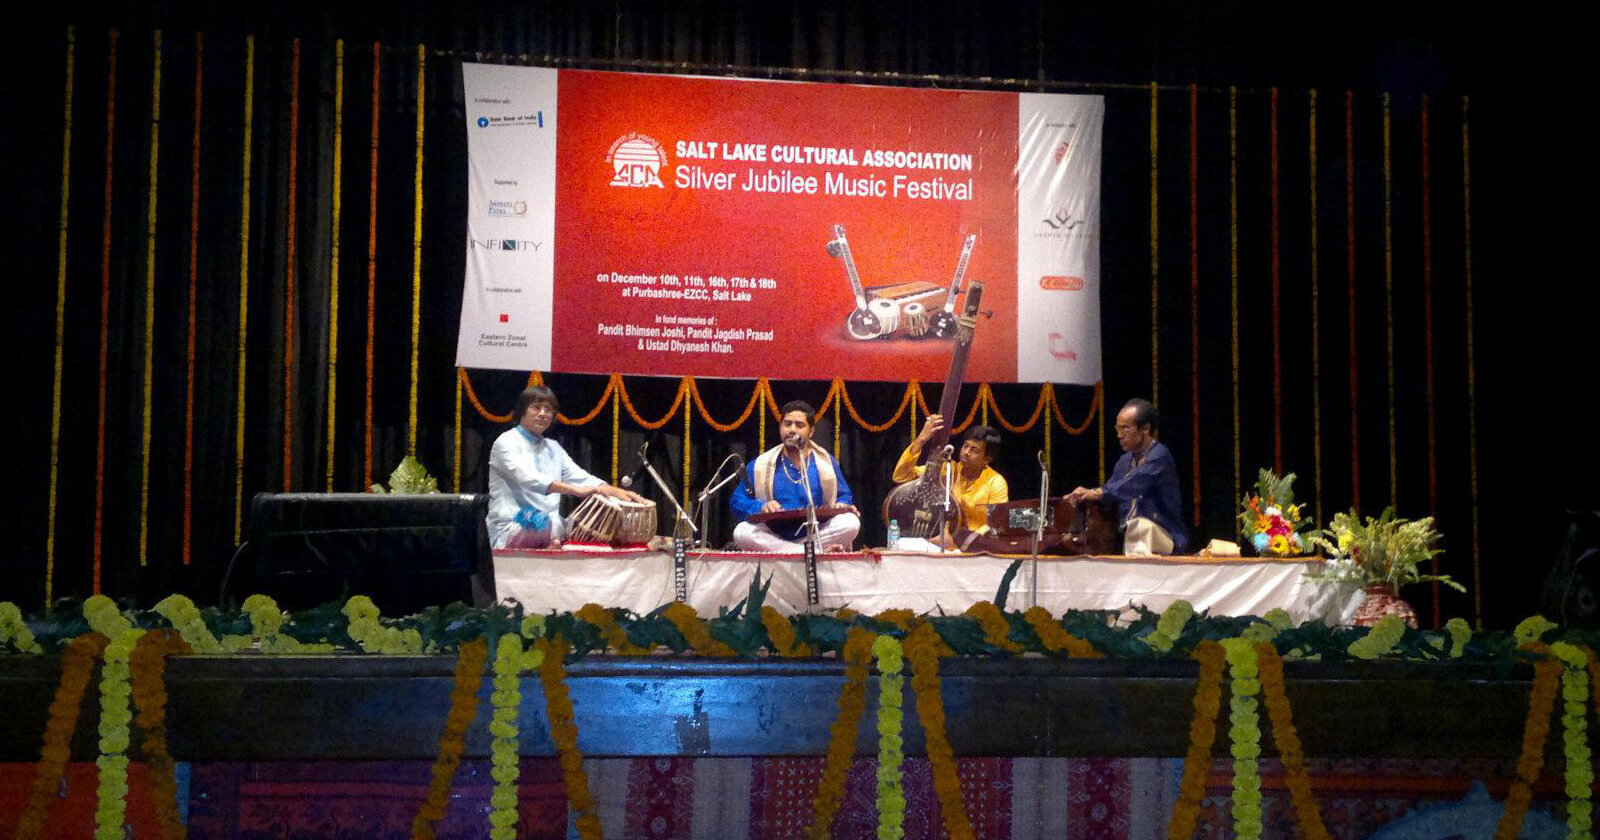 Picture of the stage at Salt Lake conference with the 4 musicians performing